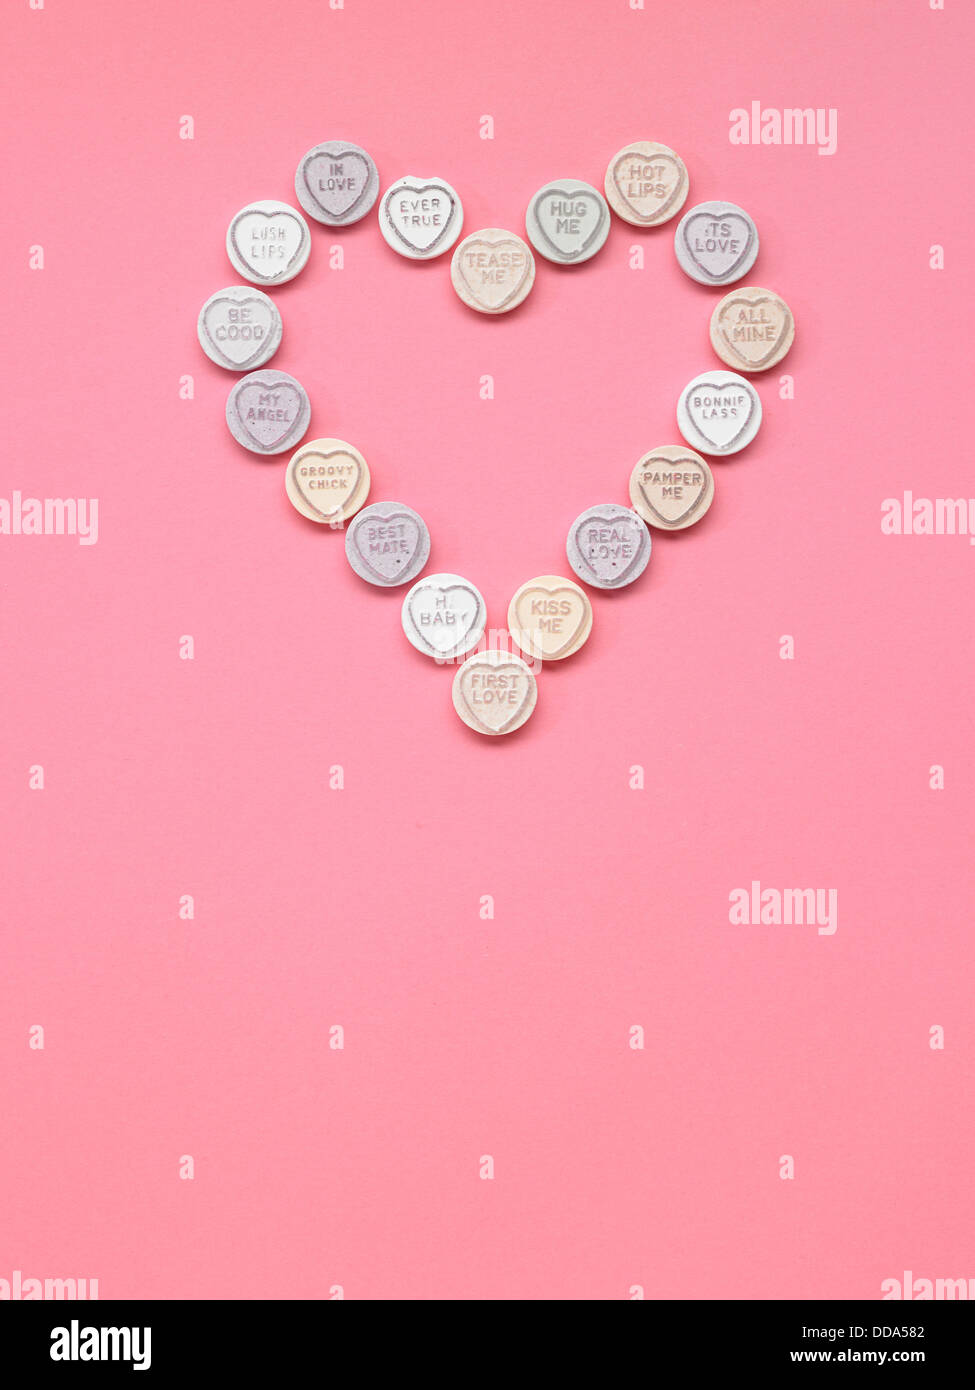 Love hearts positioned in the shape of a heart on a pink background - Stock Image